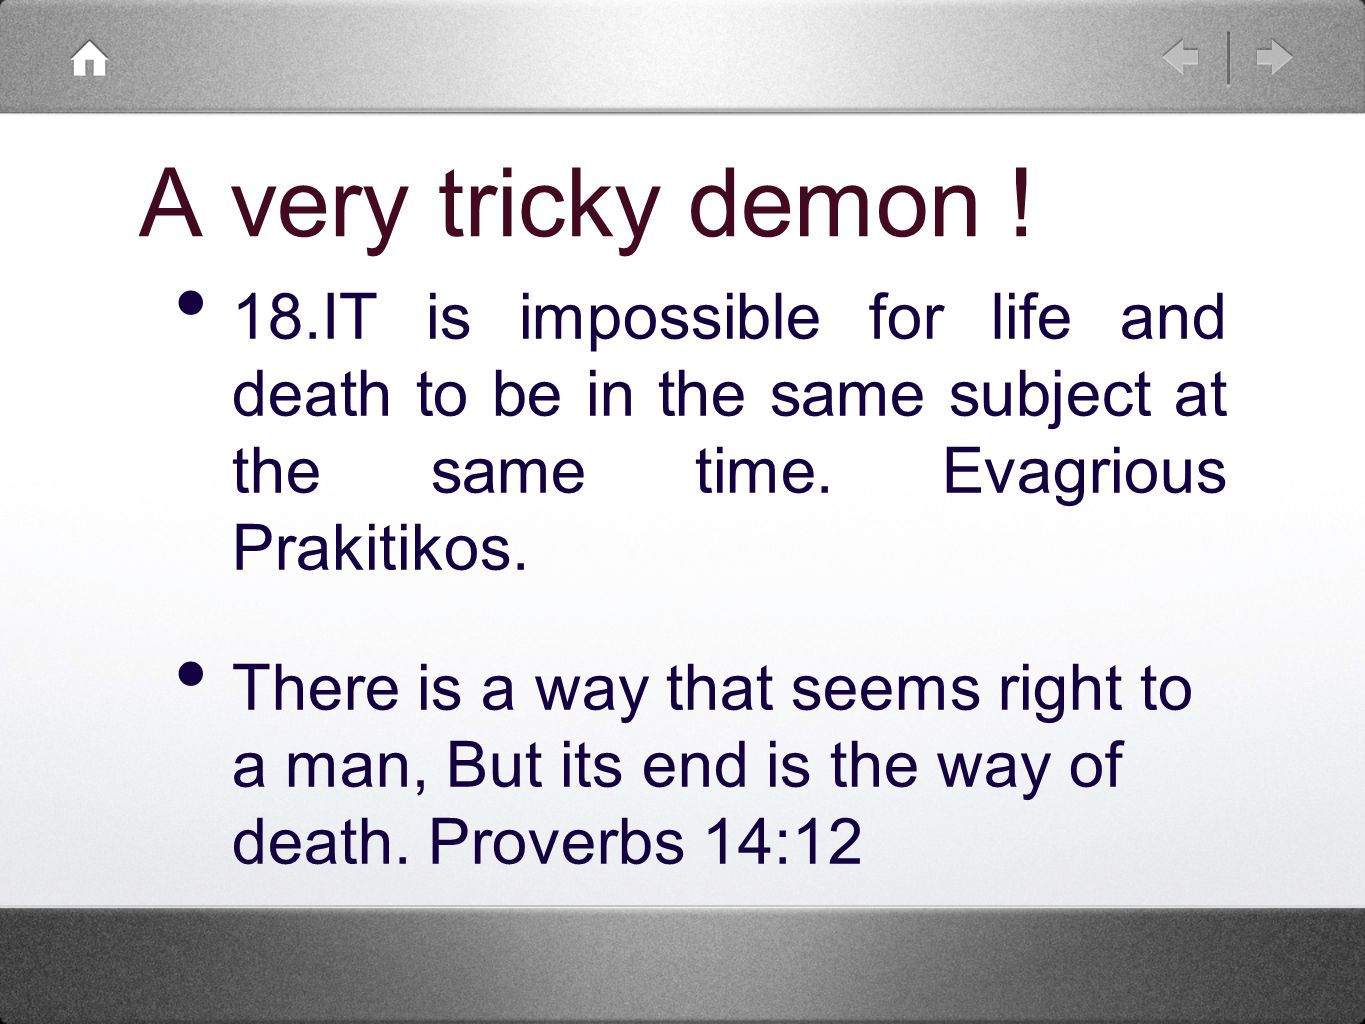 18.IT is impossible for life and death to be in the same subject at the same time.